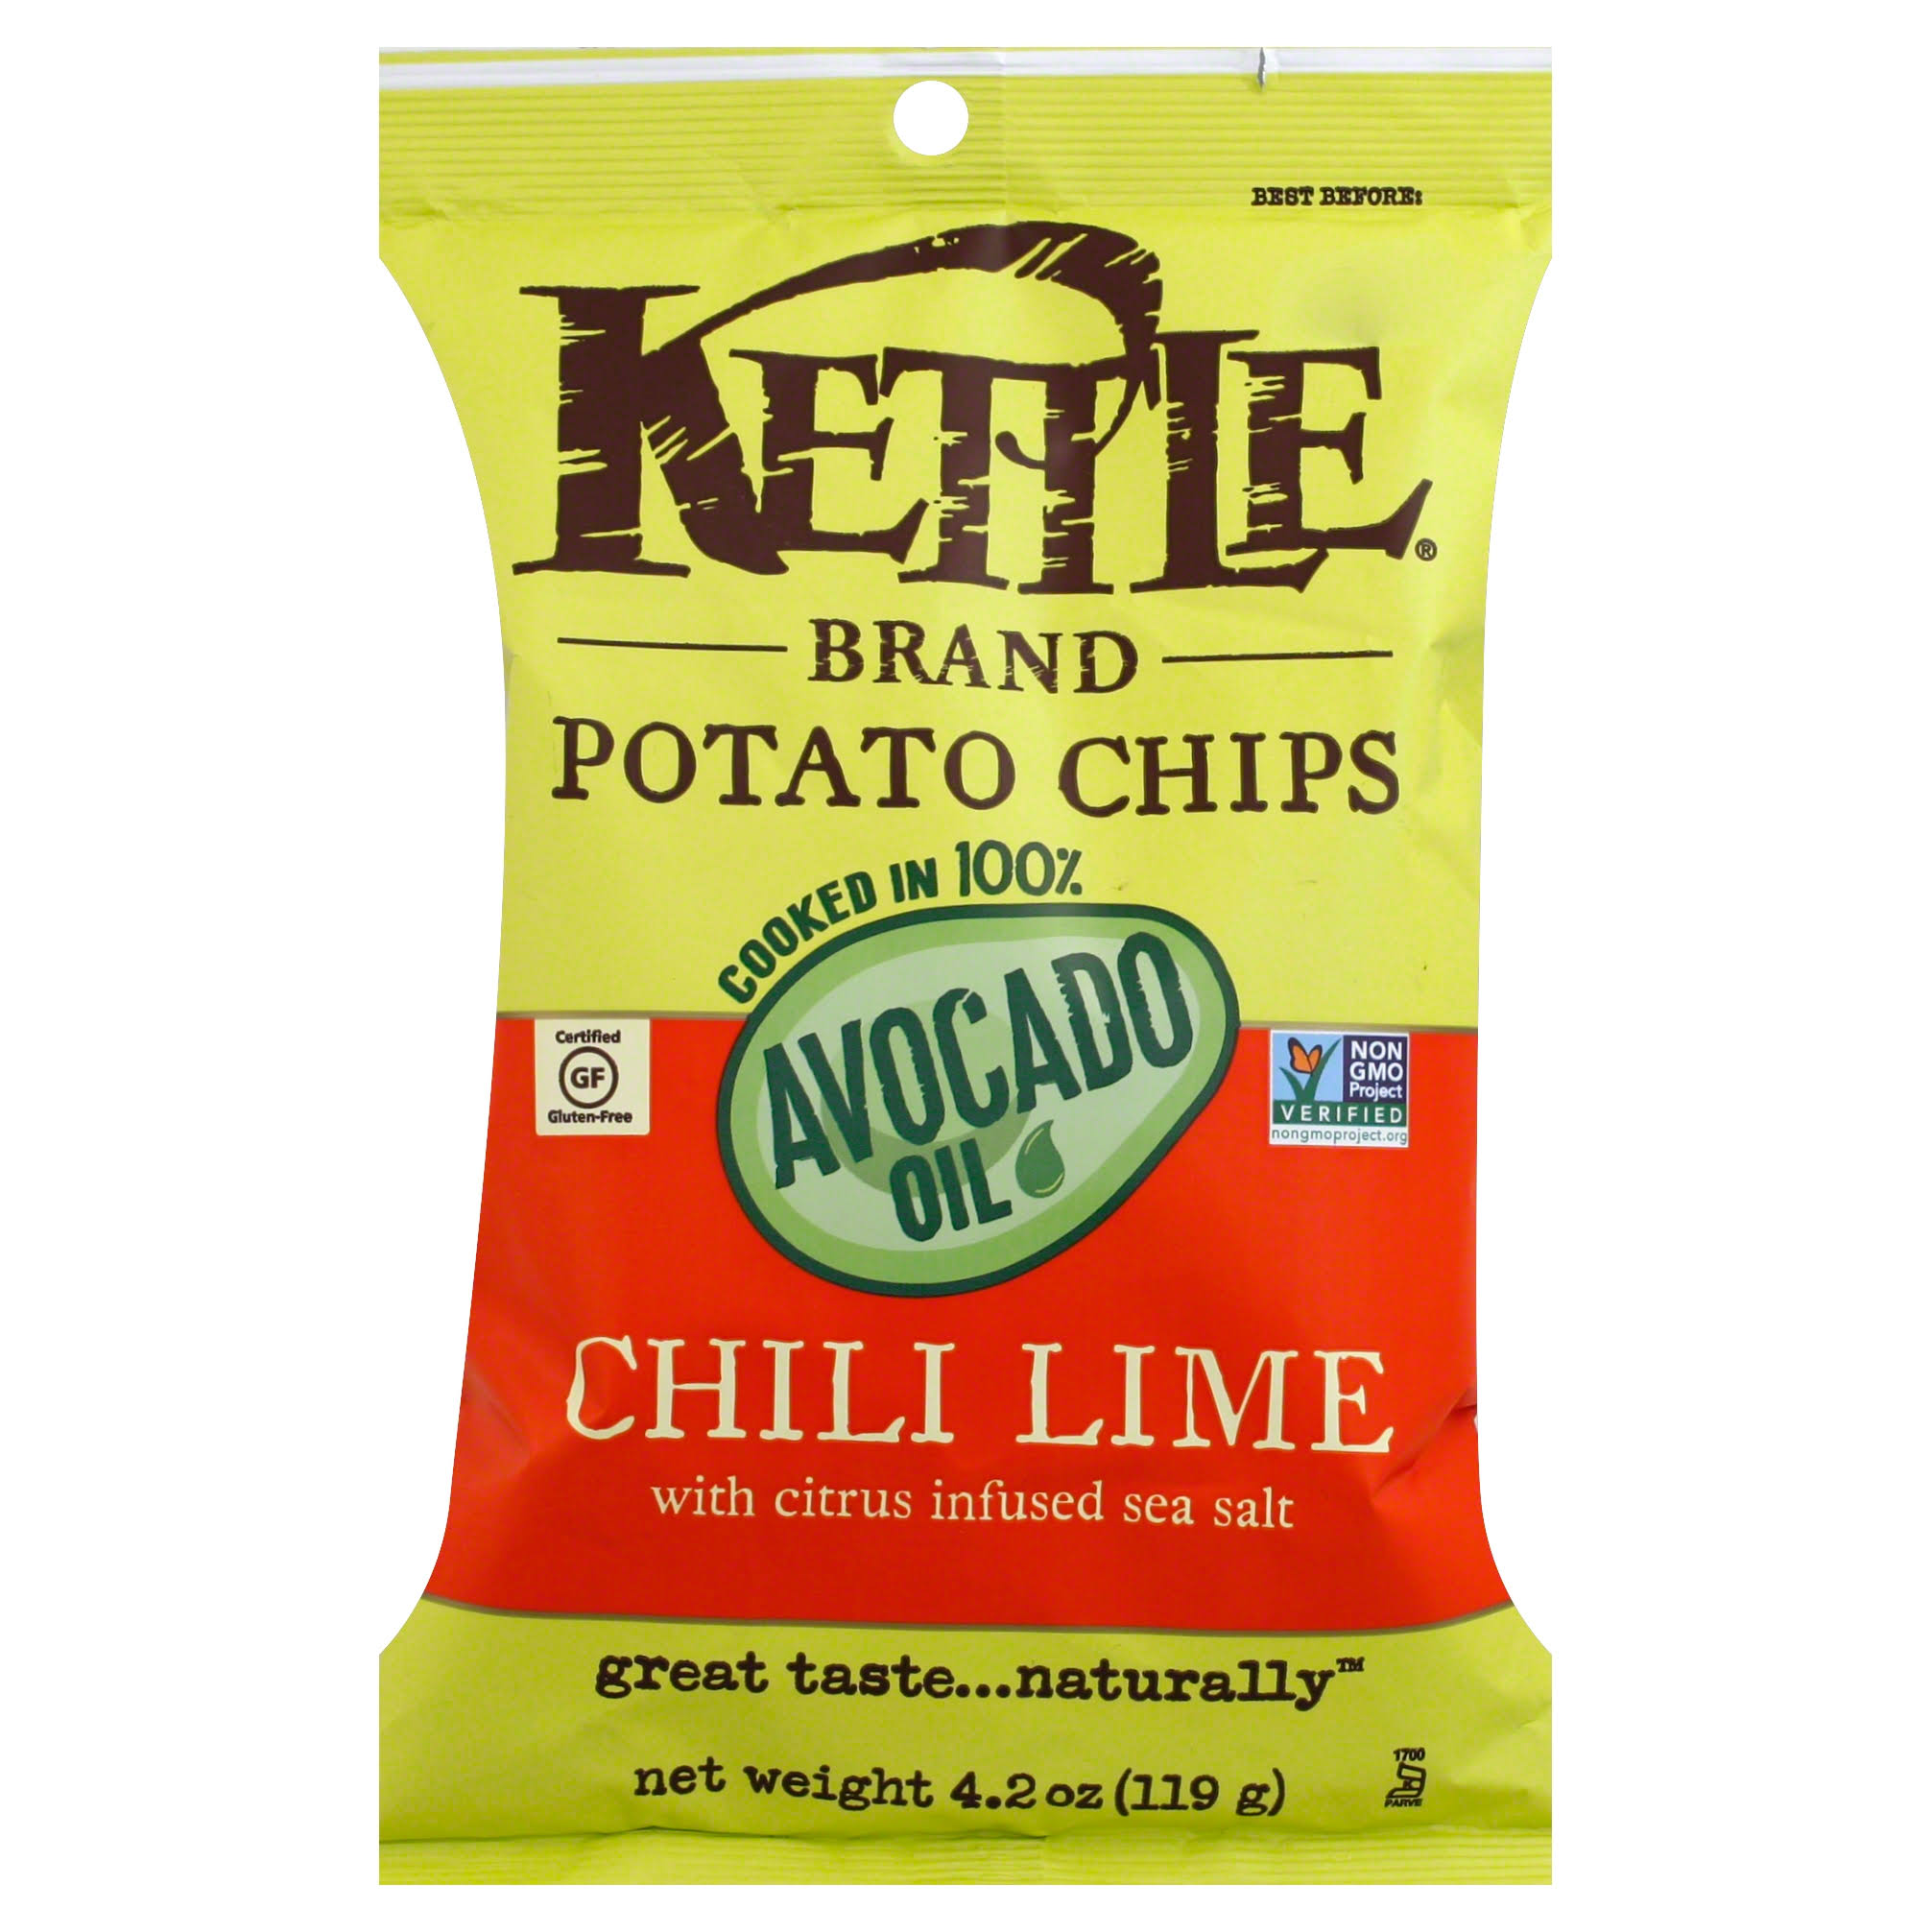 Kettle Foods Avocado Oil Potato Chips - Chili Lime, 4.2oz